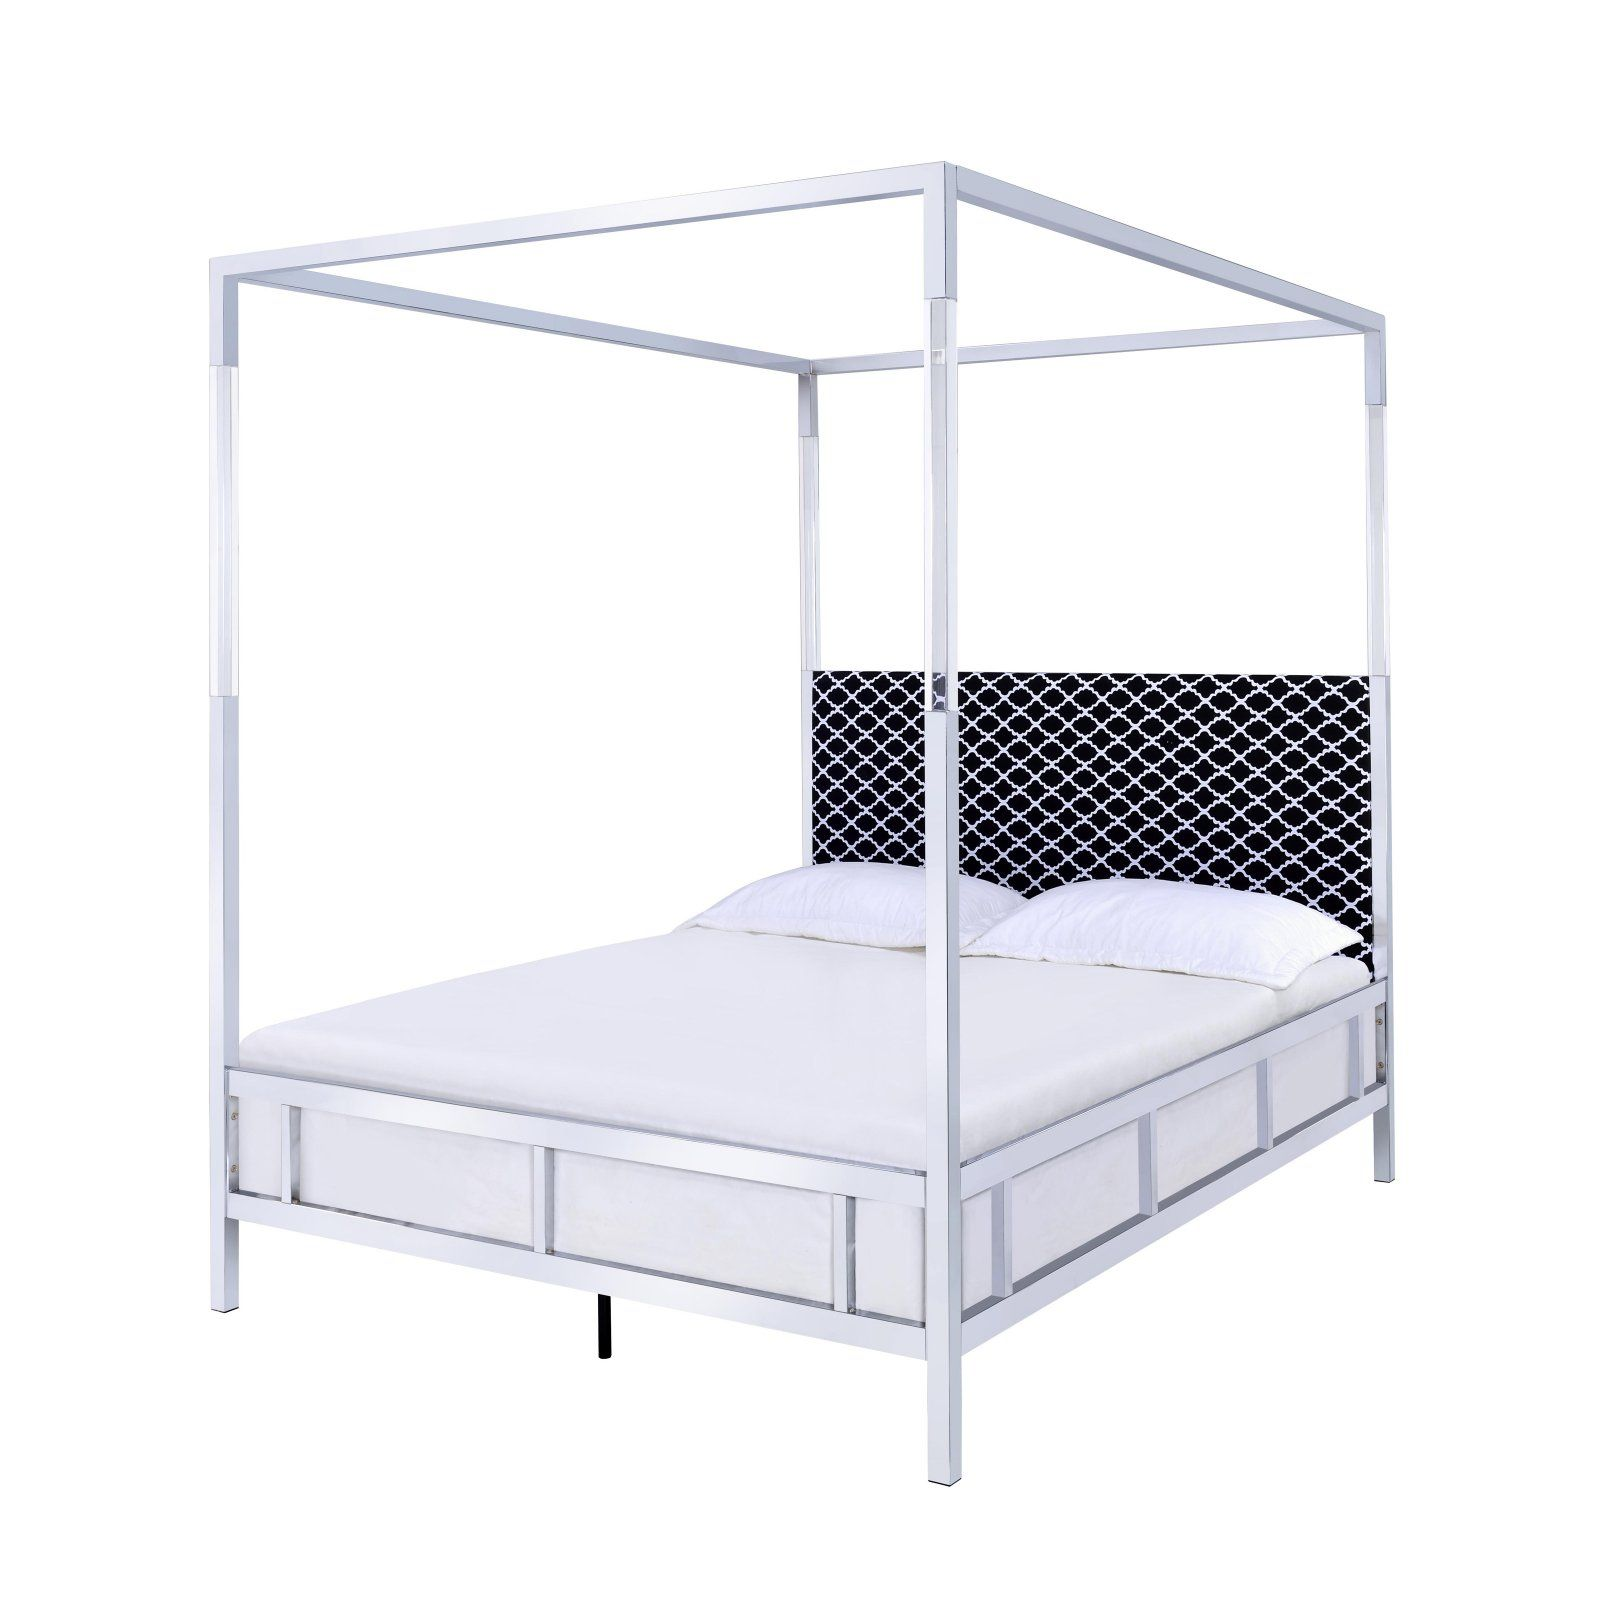 Acme Furniture Raegan Canopy Bed Acrylic Chrome Queen